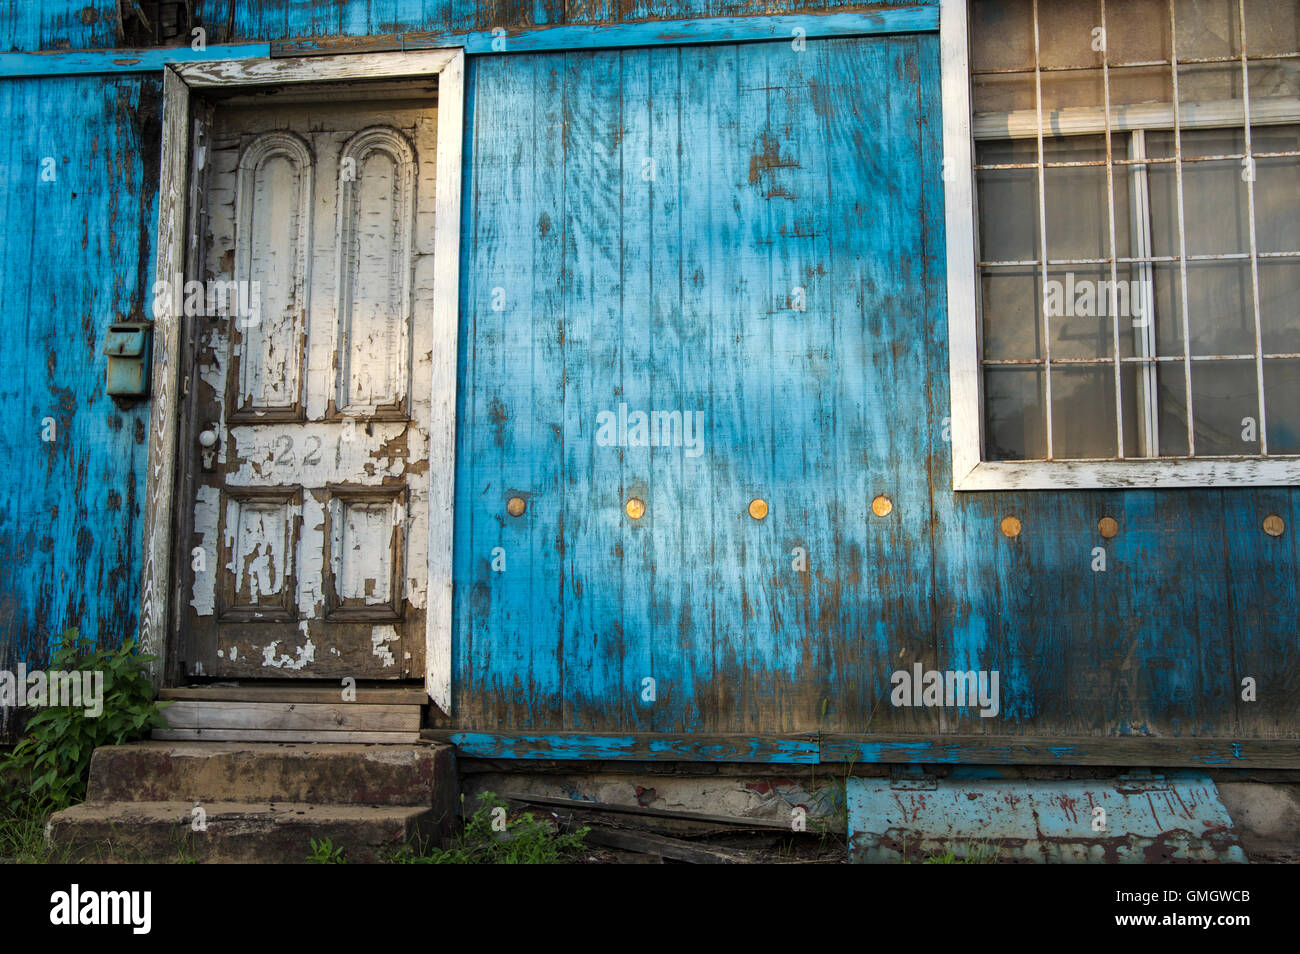 Golden dots on a wooden wall painted blue next to a doorway at a dilapidated house - Stock Image